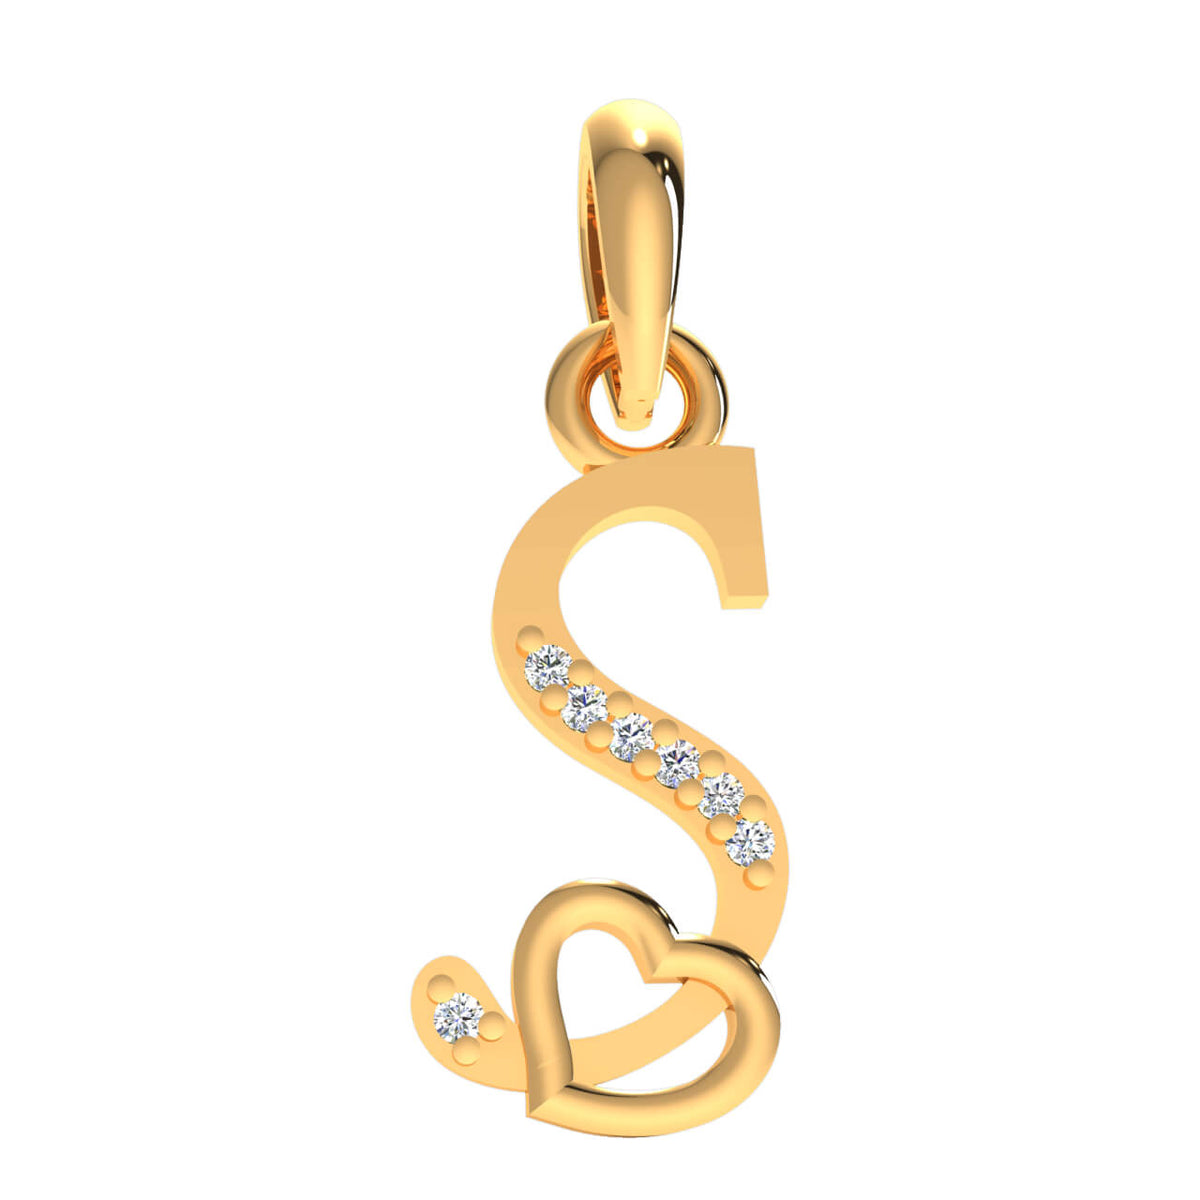 0.03 Ct Drop Initial Pendant For Women Round GH SI2 Diamond 14k Gold